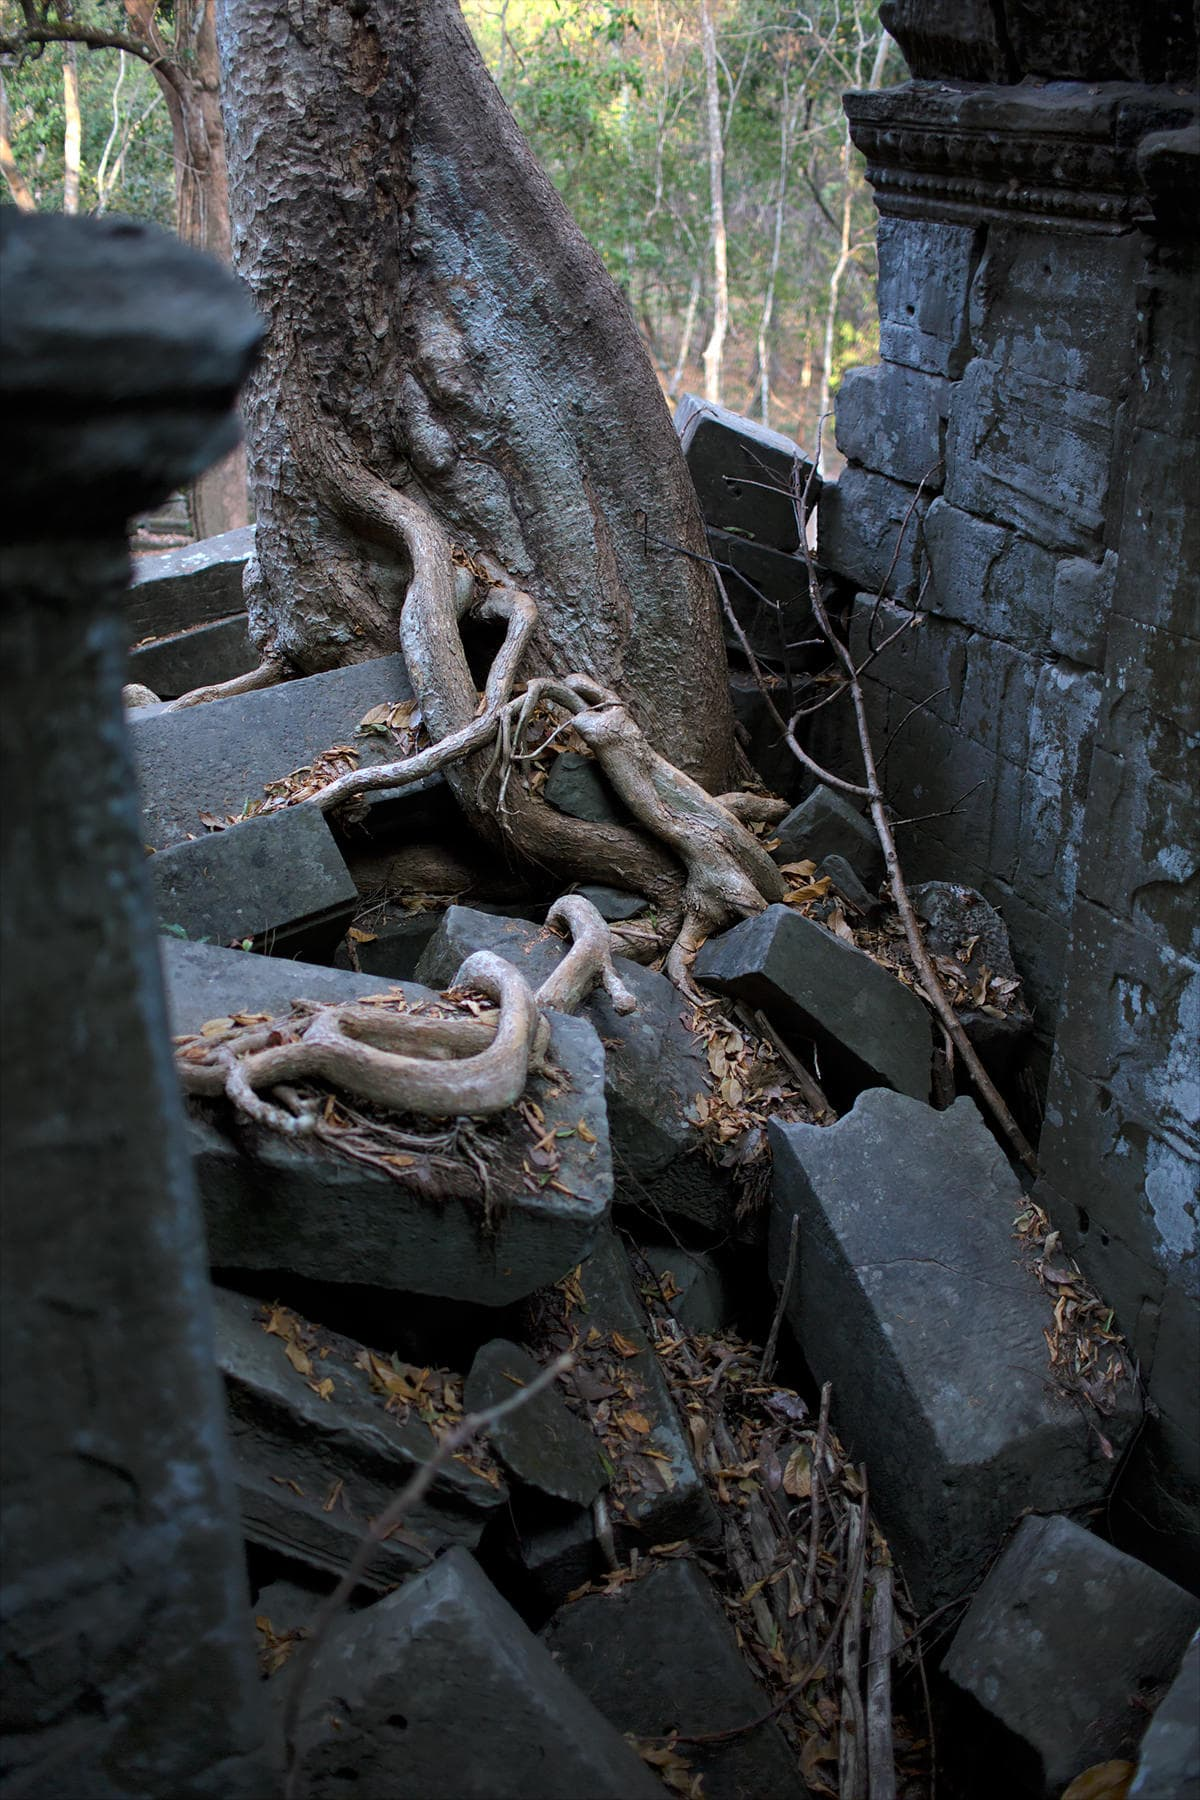 Beng Mealea tree roots growing on temple ruins